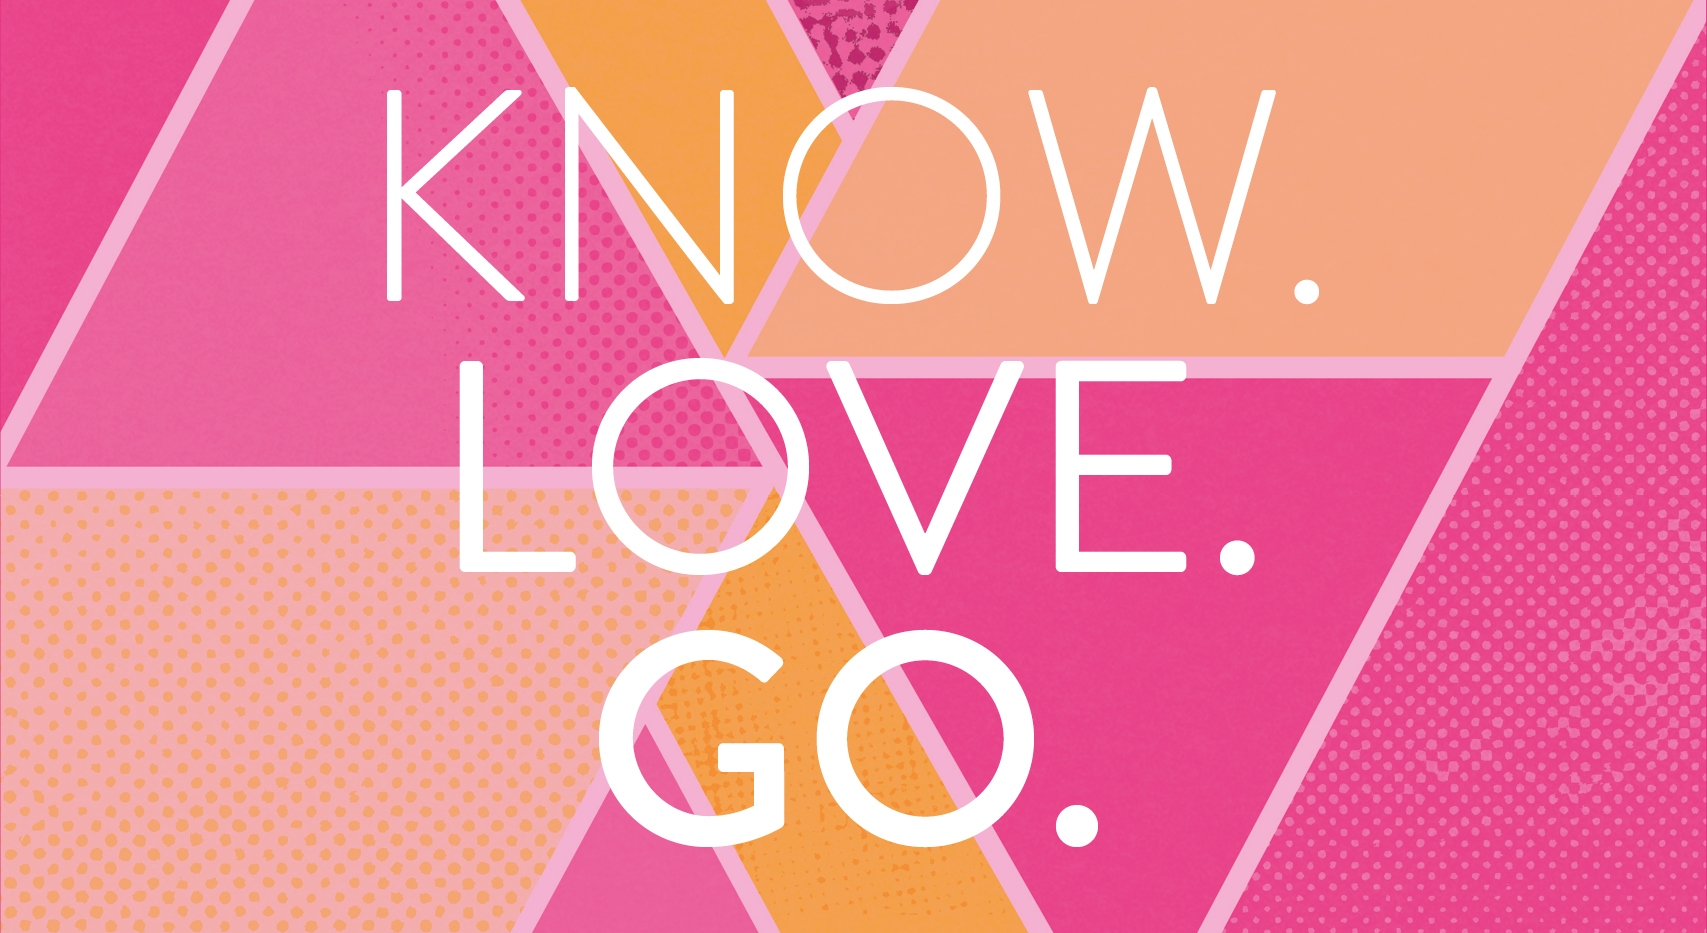 Know. Love. Go.